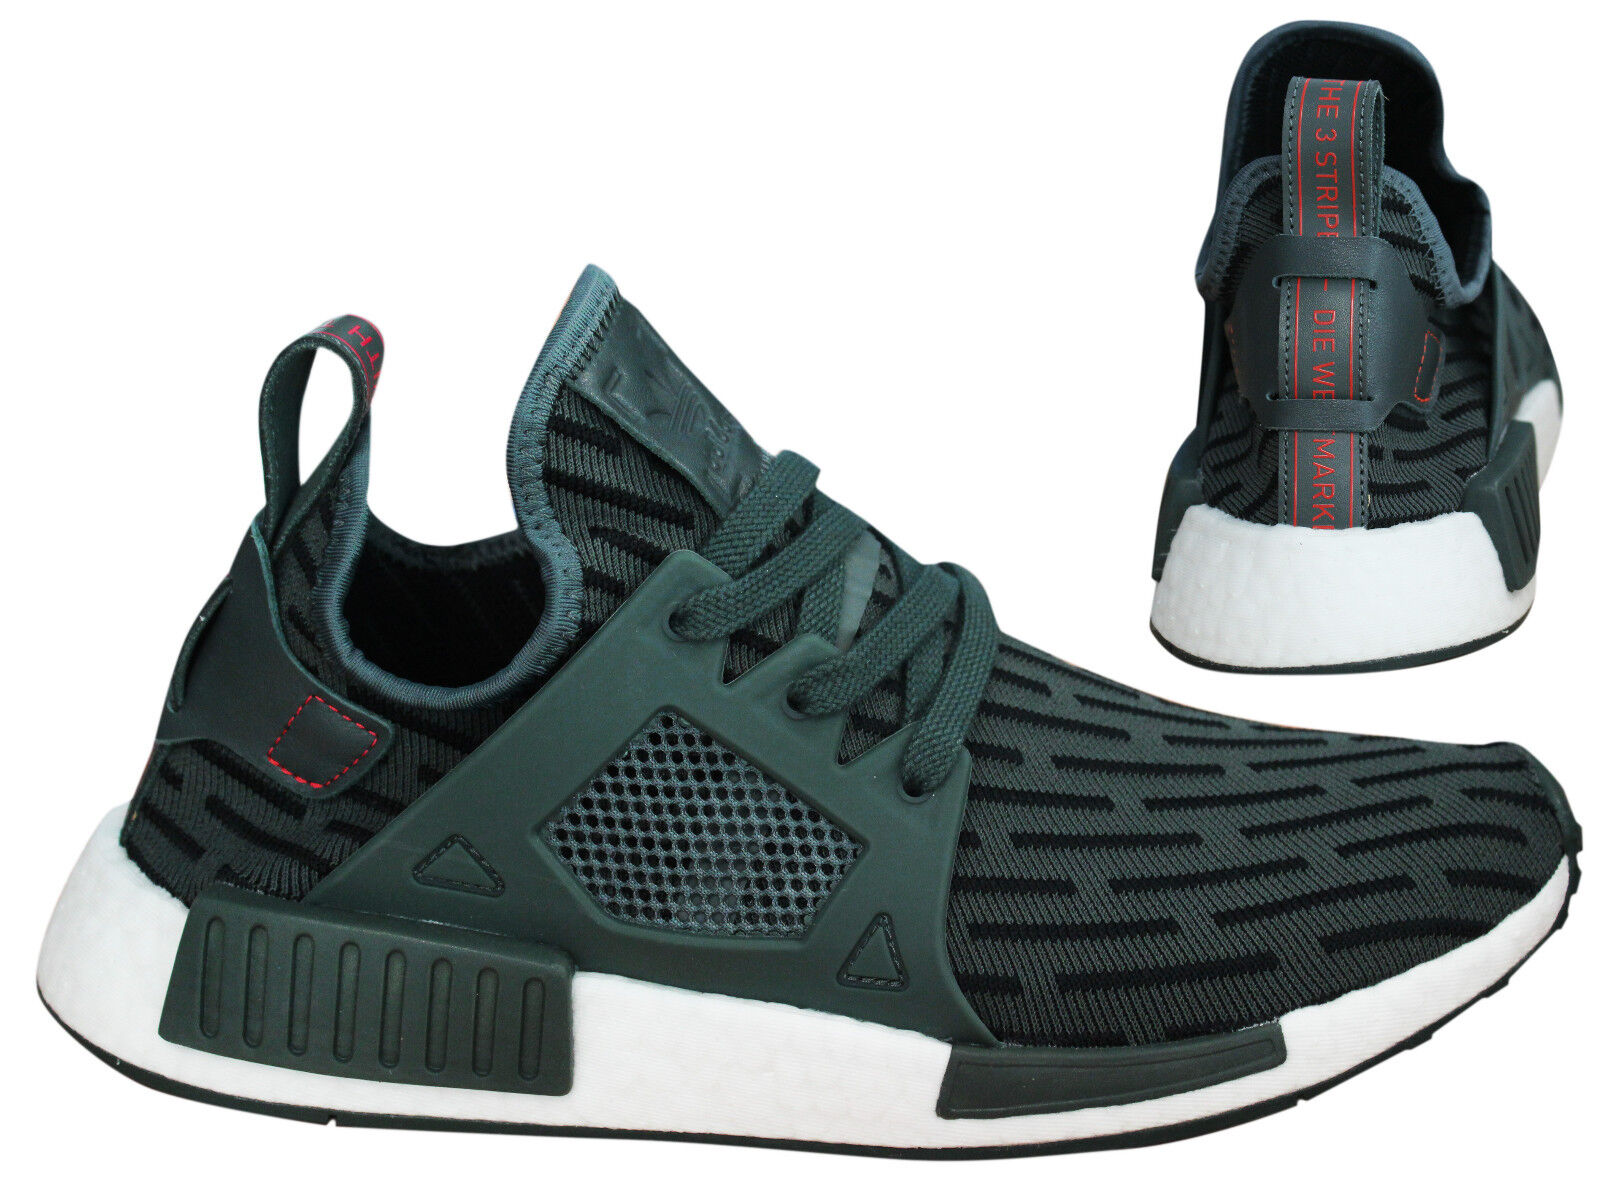 62e70bf382ac6 Adidas Originals NMD XR1 Primeknit Womens Trainers Lace Up Shoes ...